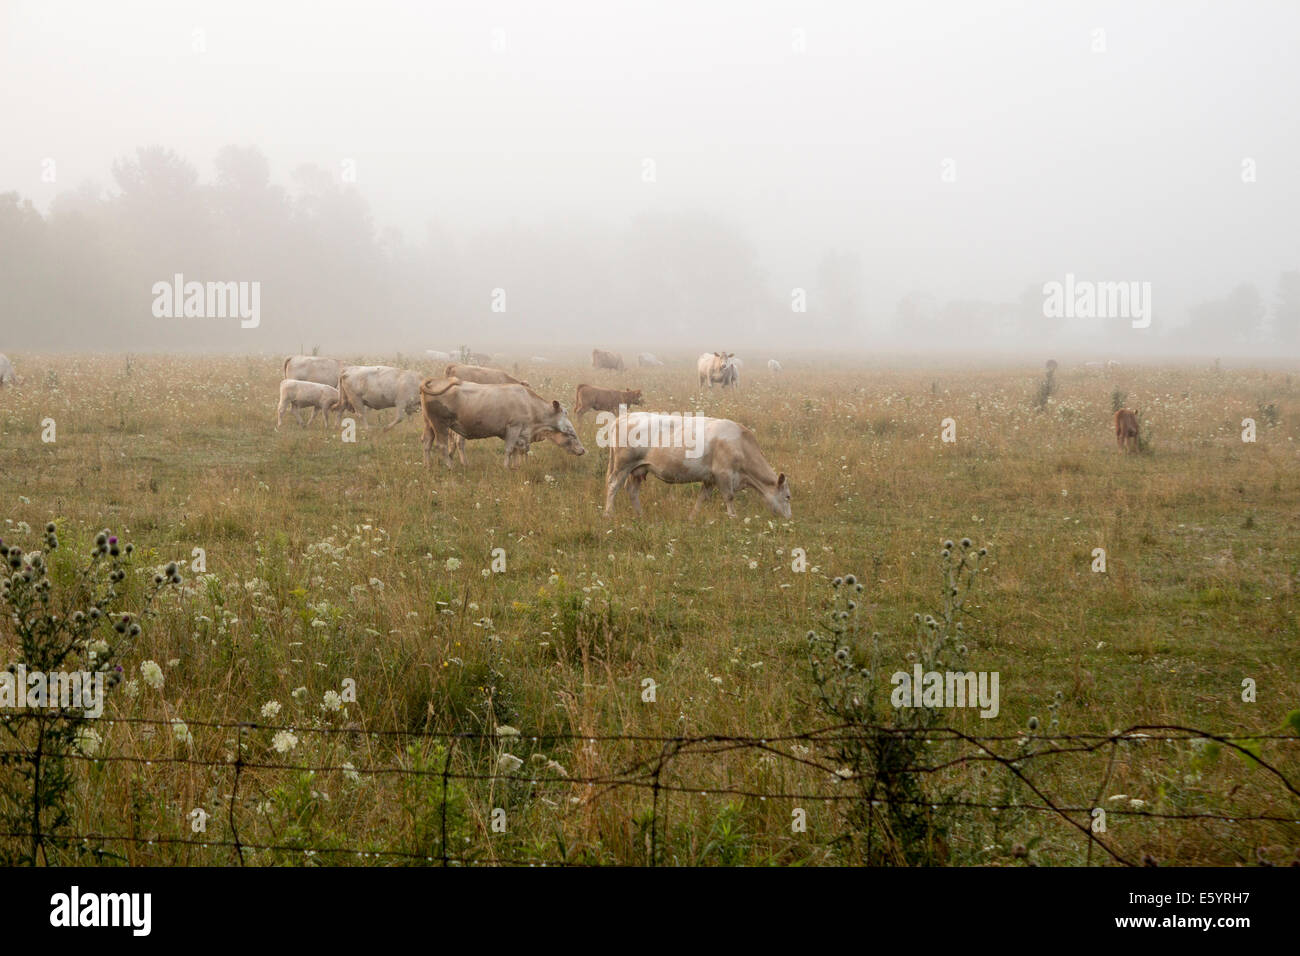 cows-grazing-in-the-fog-in-the-early-morning-mist-in-farm-field-E5YRH7.jpg